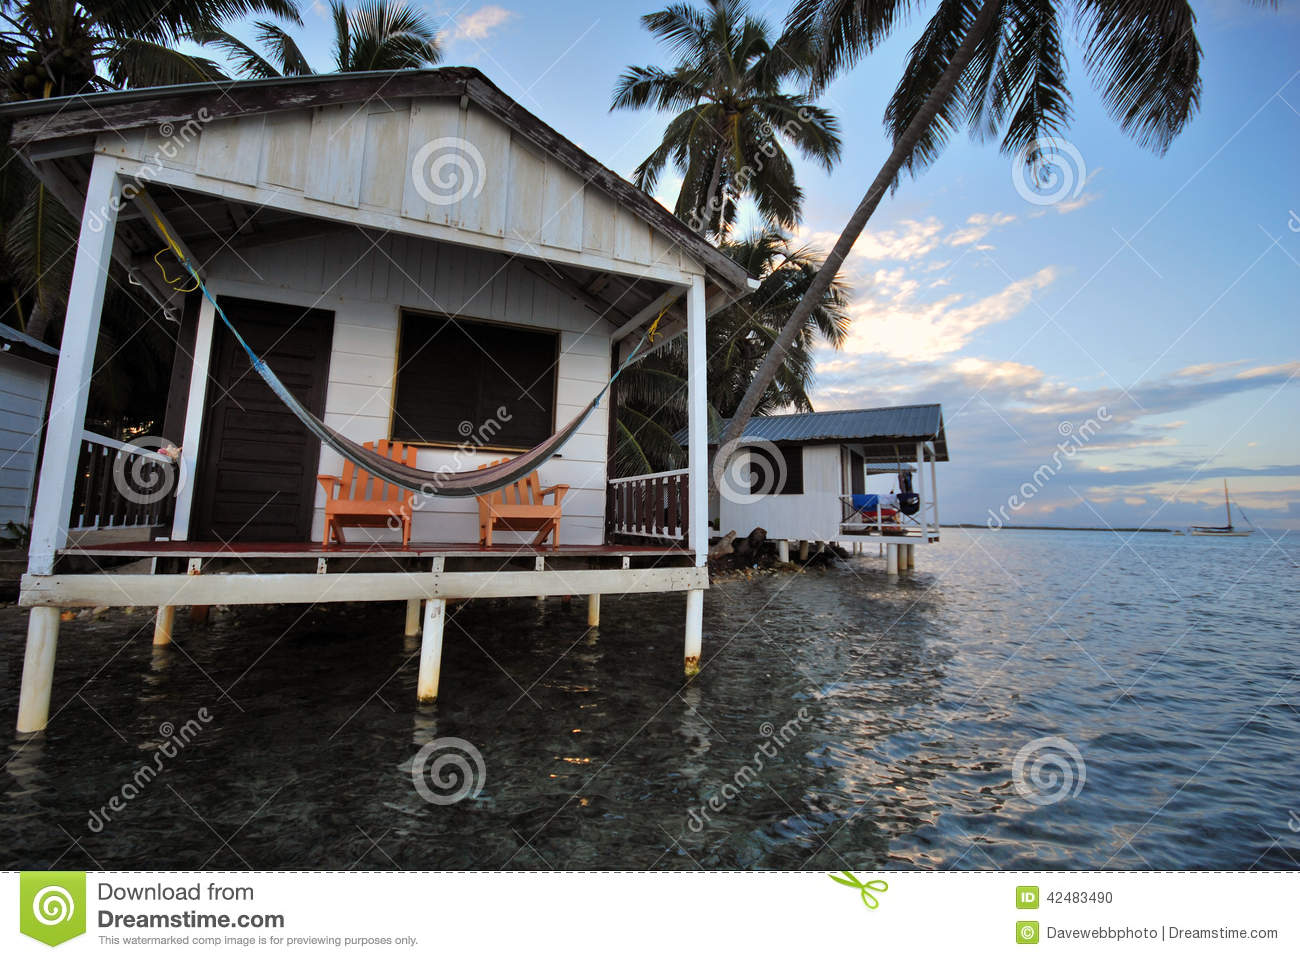 Beach Hut in Belize